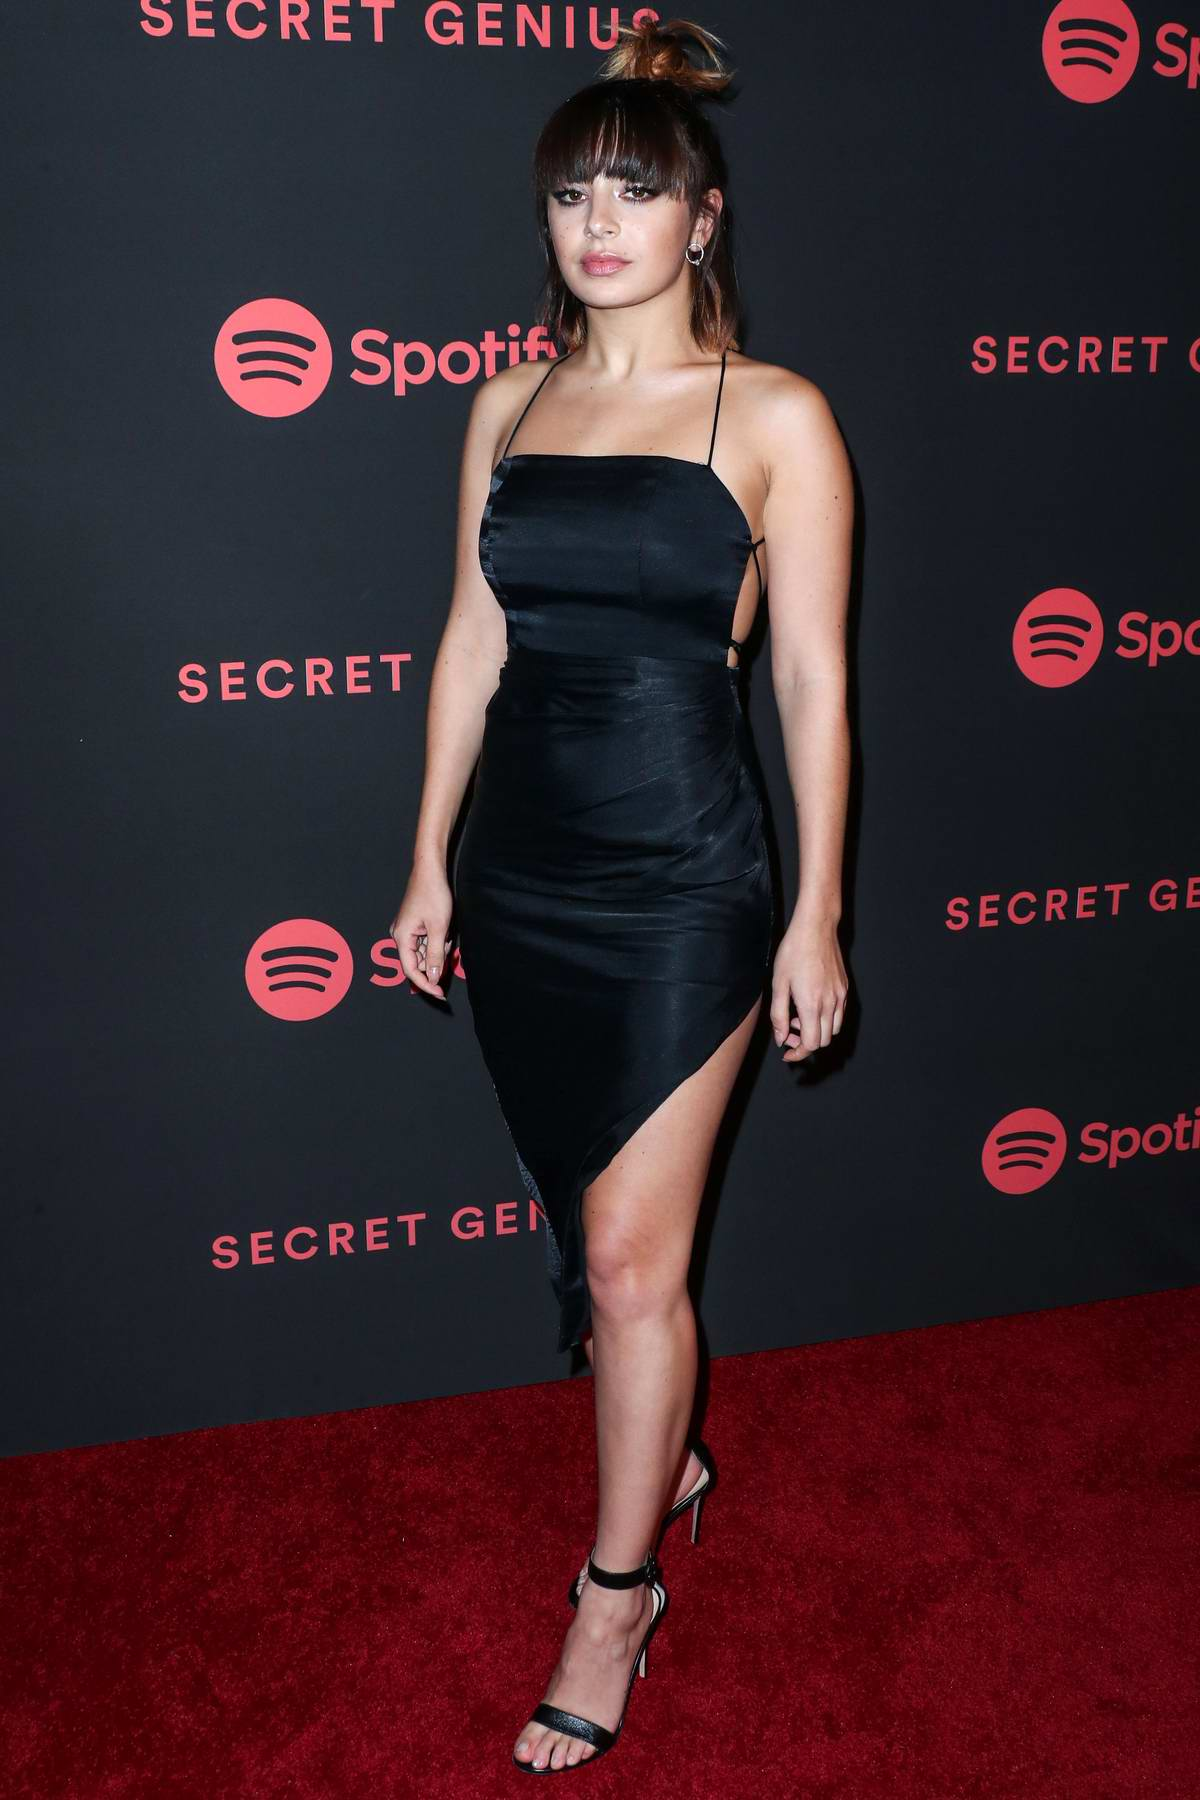 Charli XCX attends Spotify Secret Genius Awards 2018 in Los Angeles